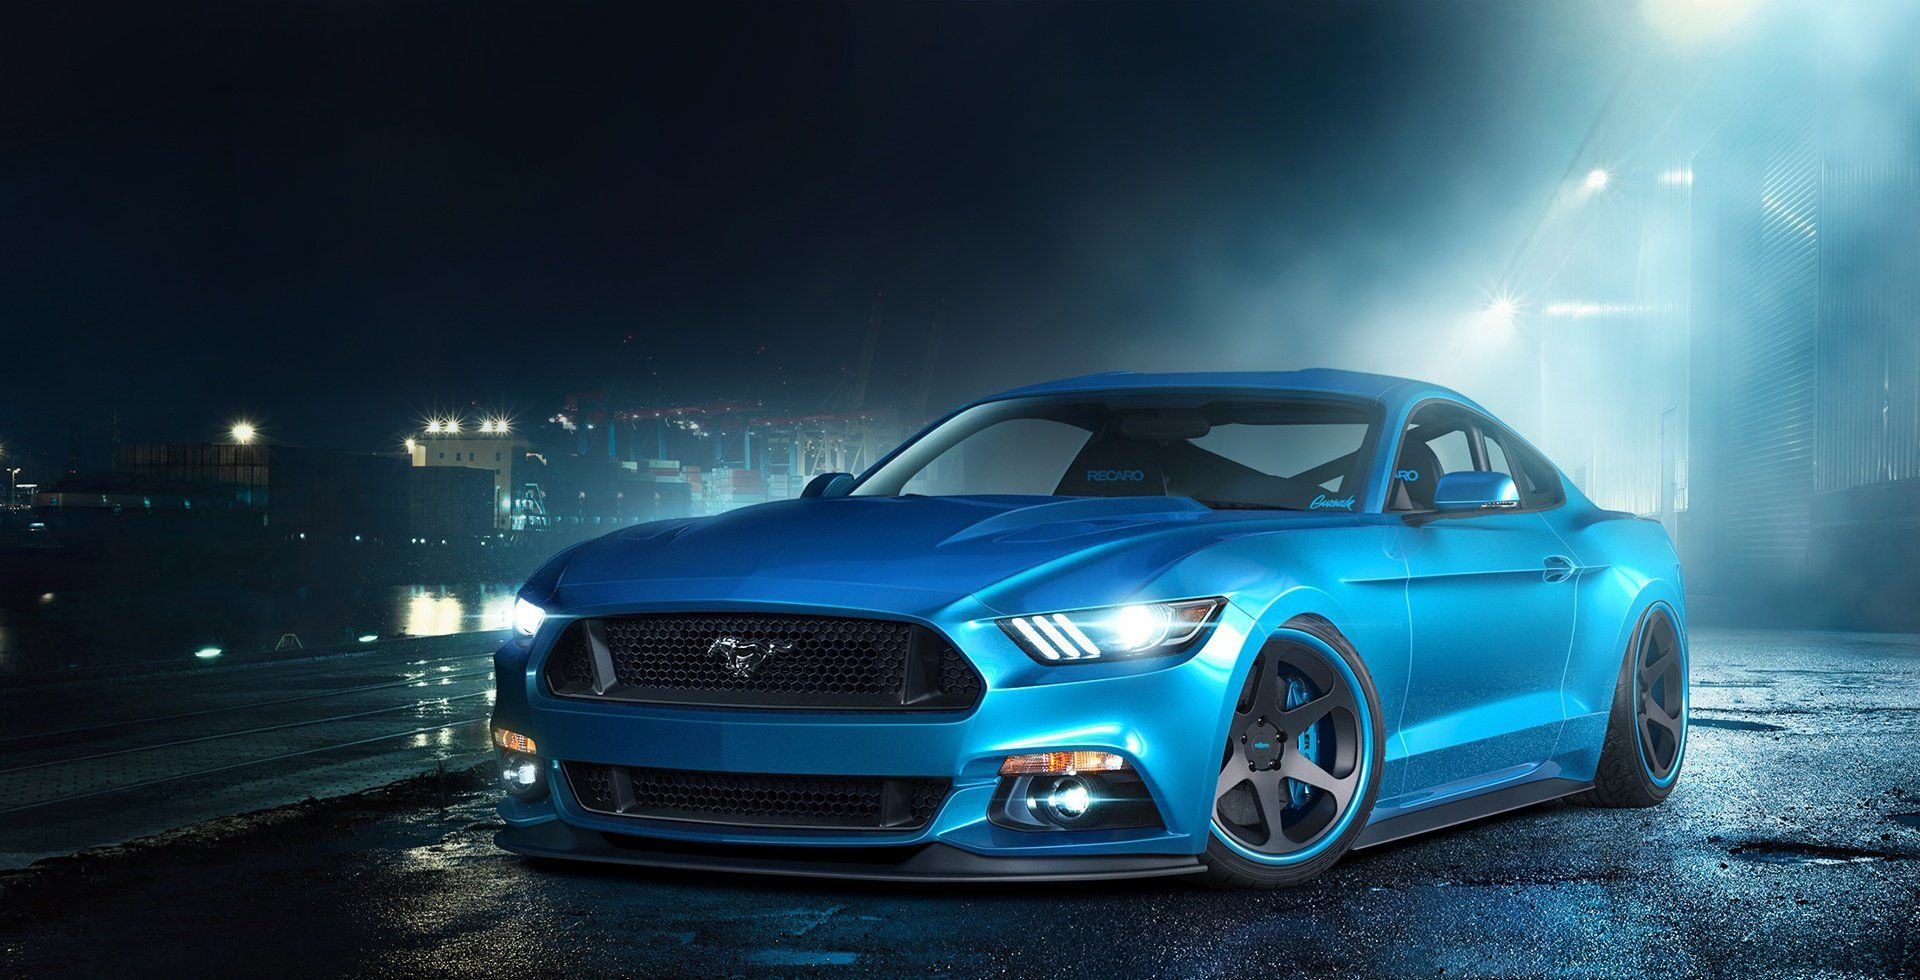 Ford Mustang Gt In The Night Mist 2015 Ford Mustang Mustang Gt